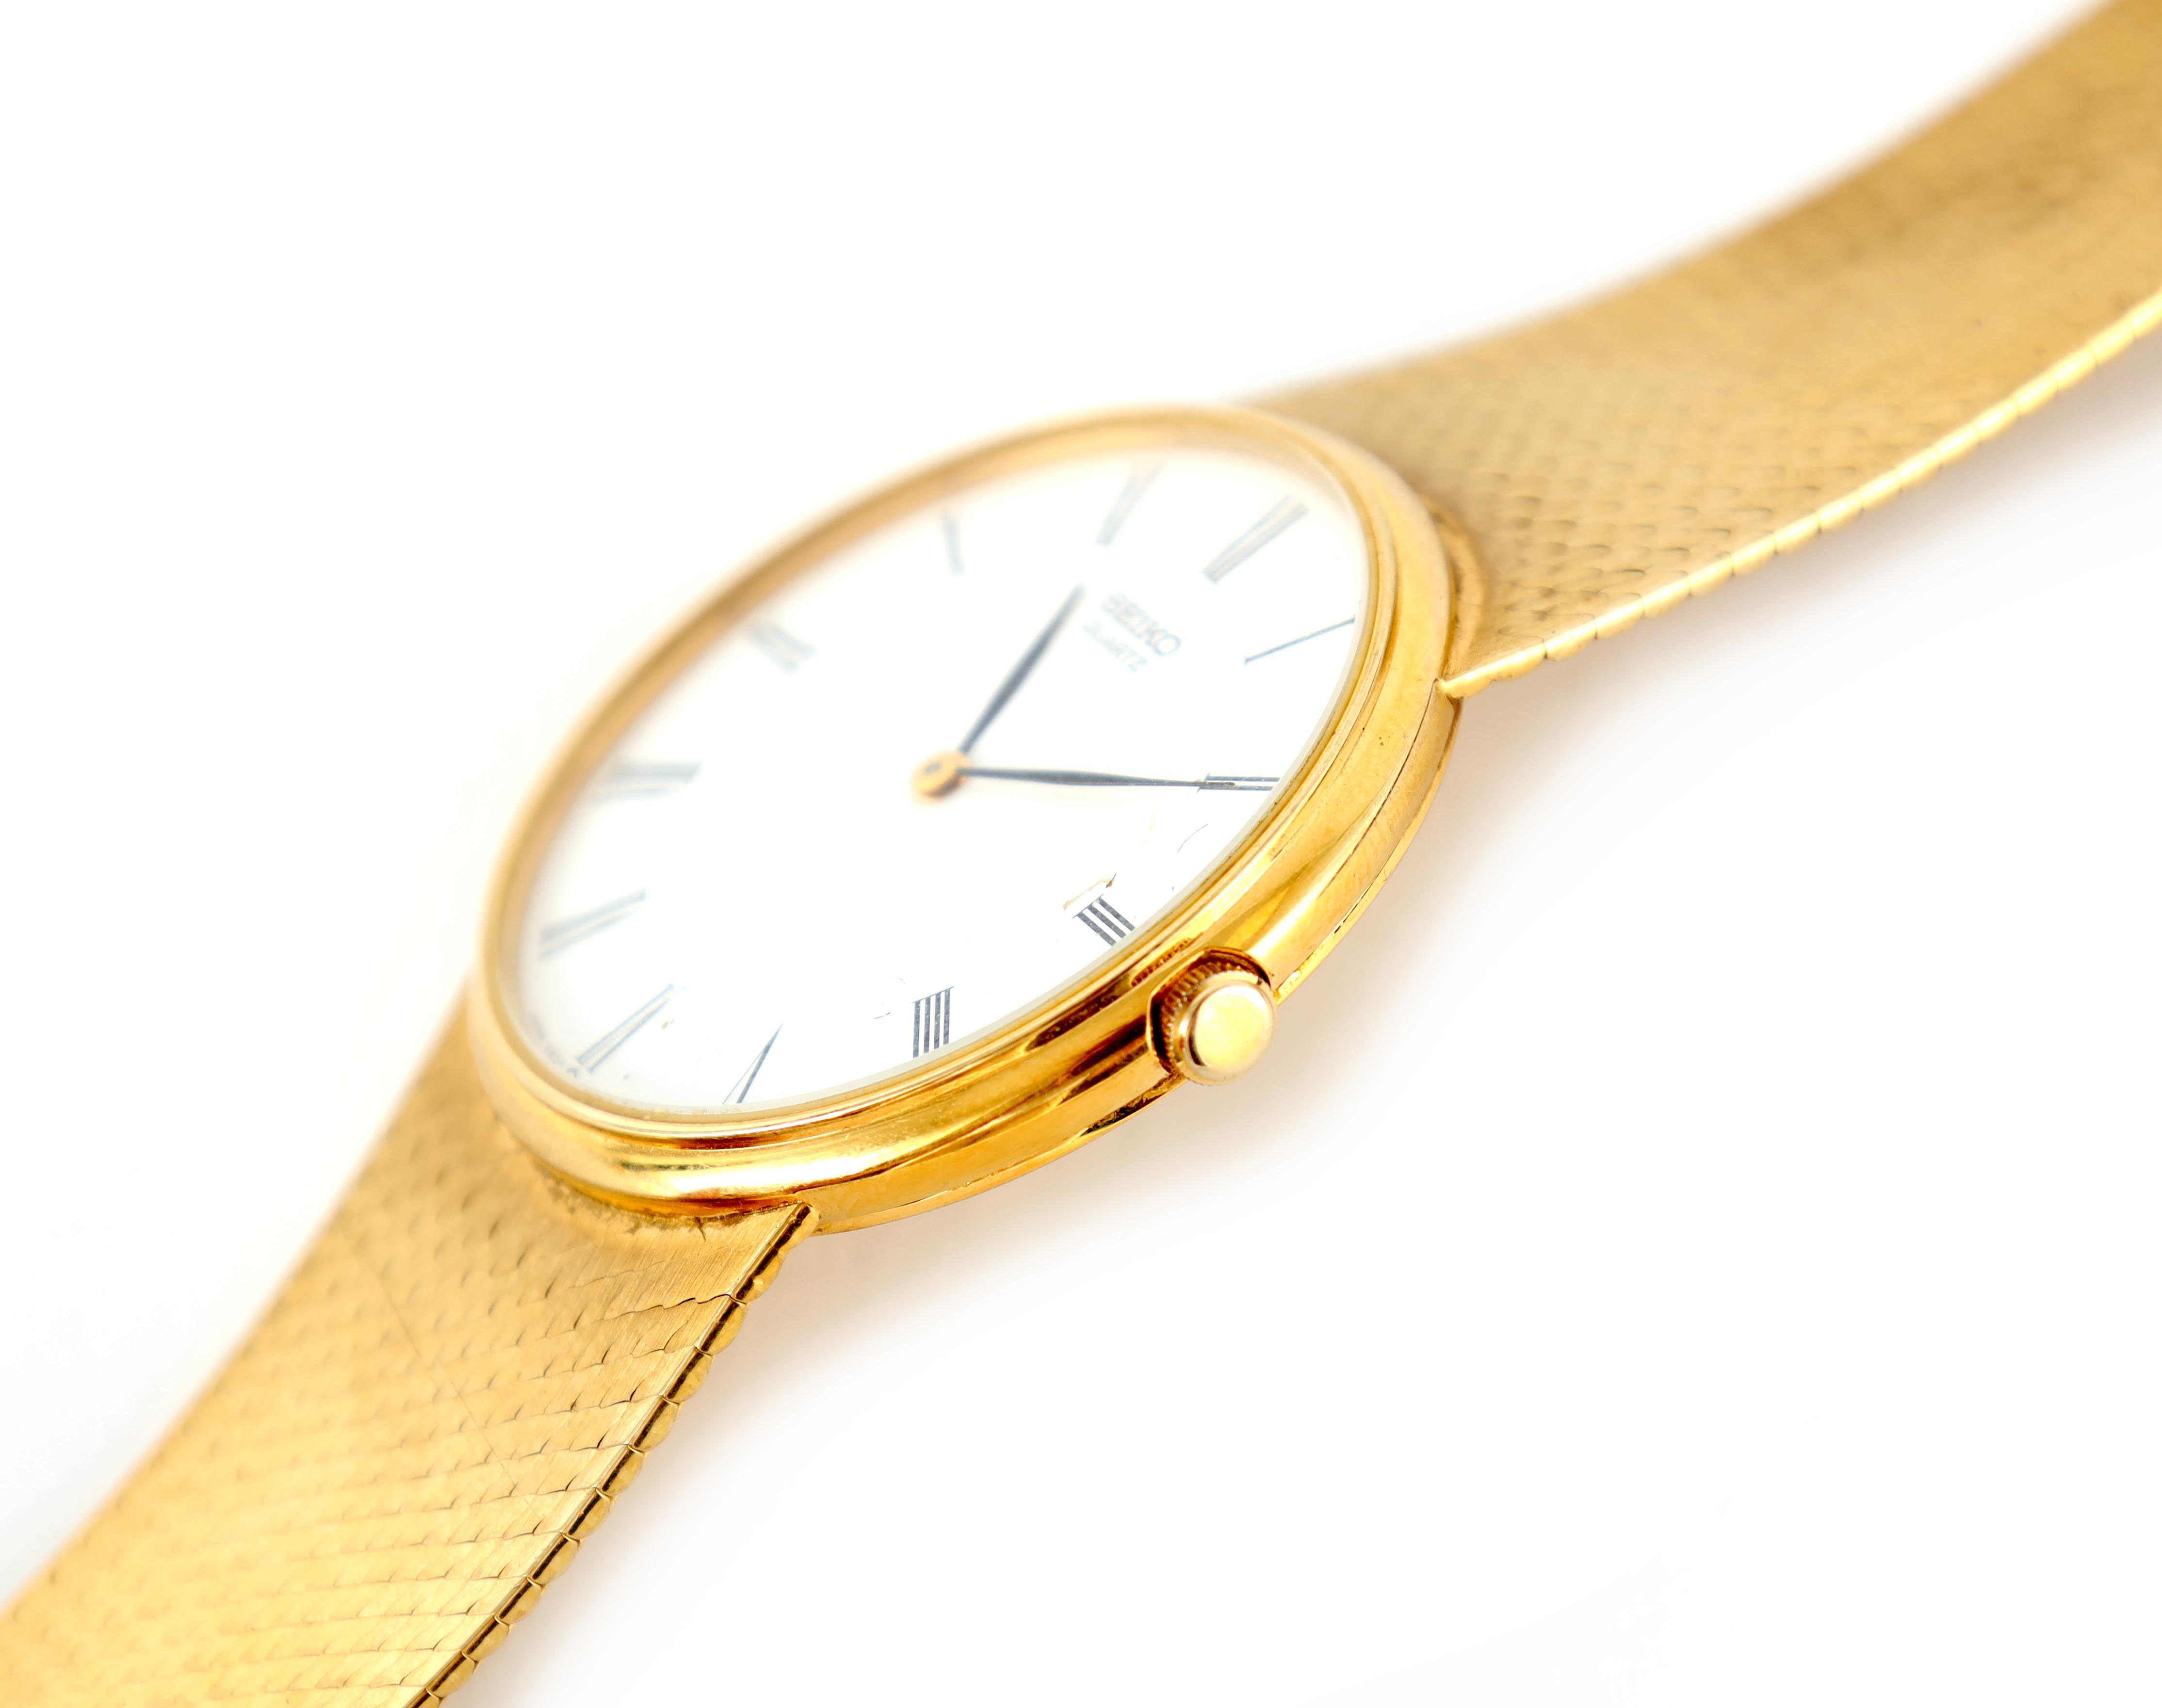 A GENTLEMAN'S 9CT GOLD SEIKO WRISTWATCH on original 9ct gold bracelet The white enamel dial with - Image 7 of 8